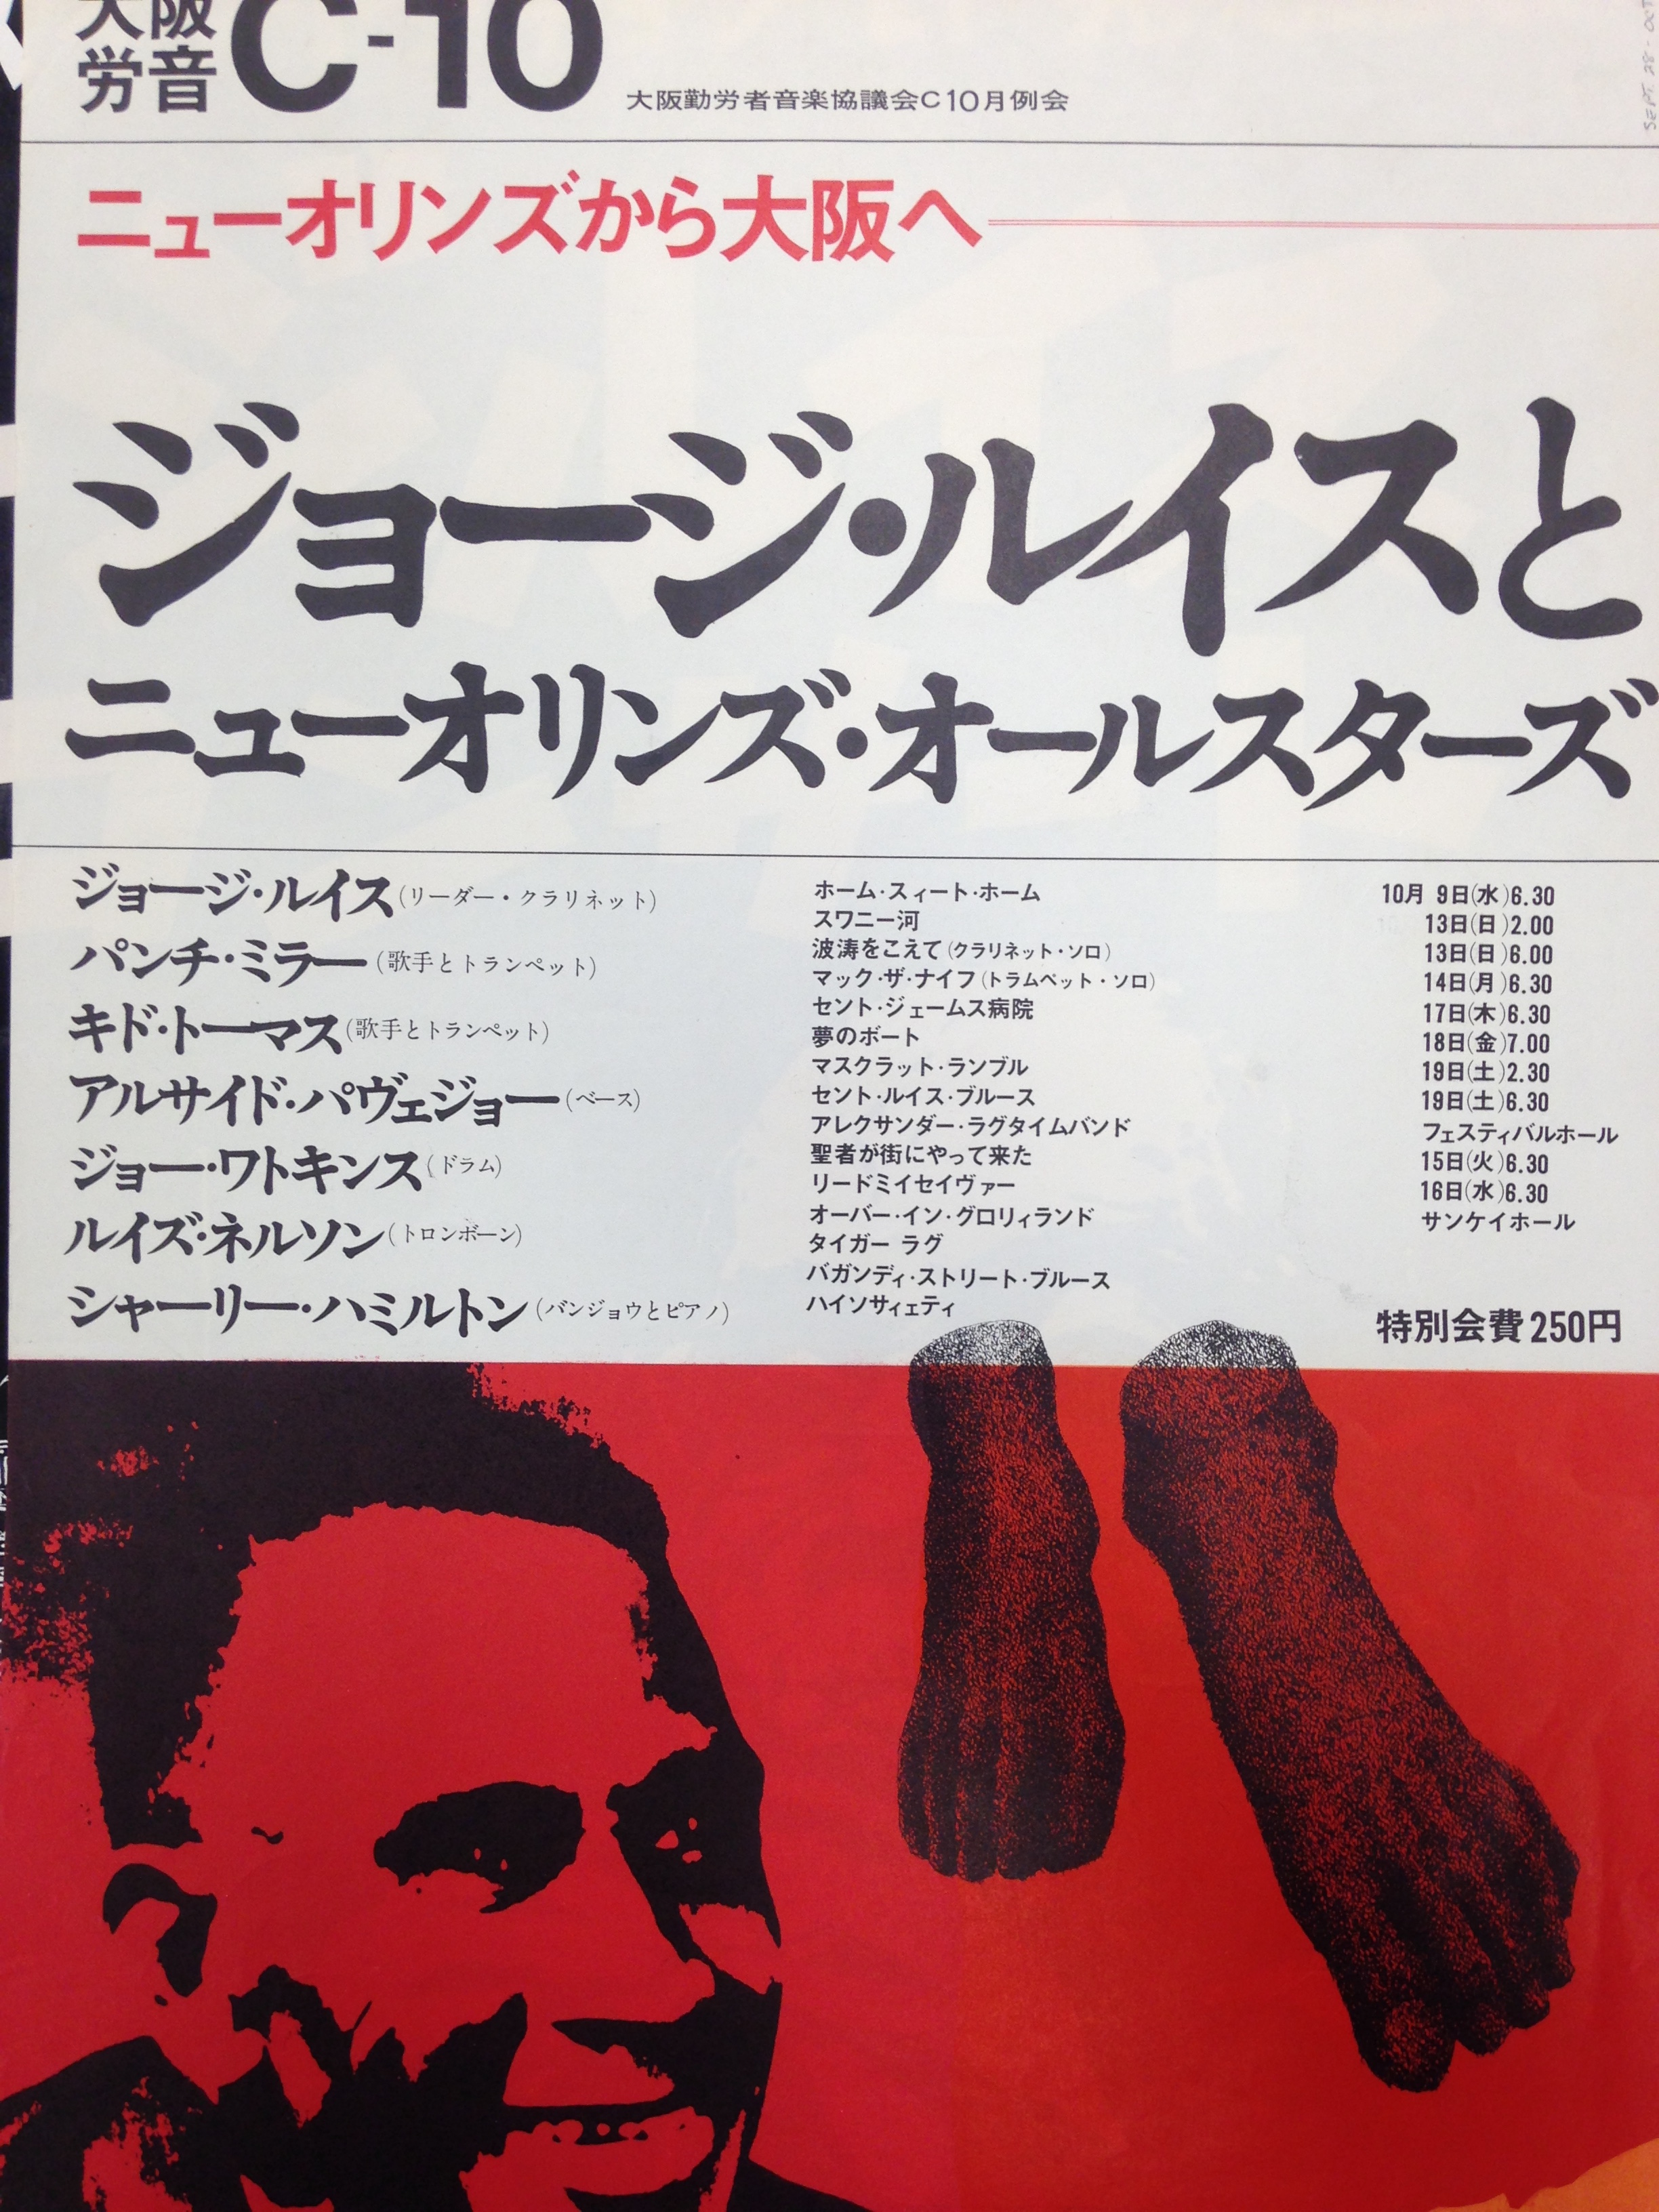 japanese jazz poster george lewis 1960s new orleans jazz archives spring finn and co adventures